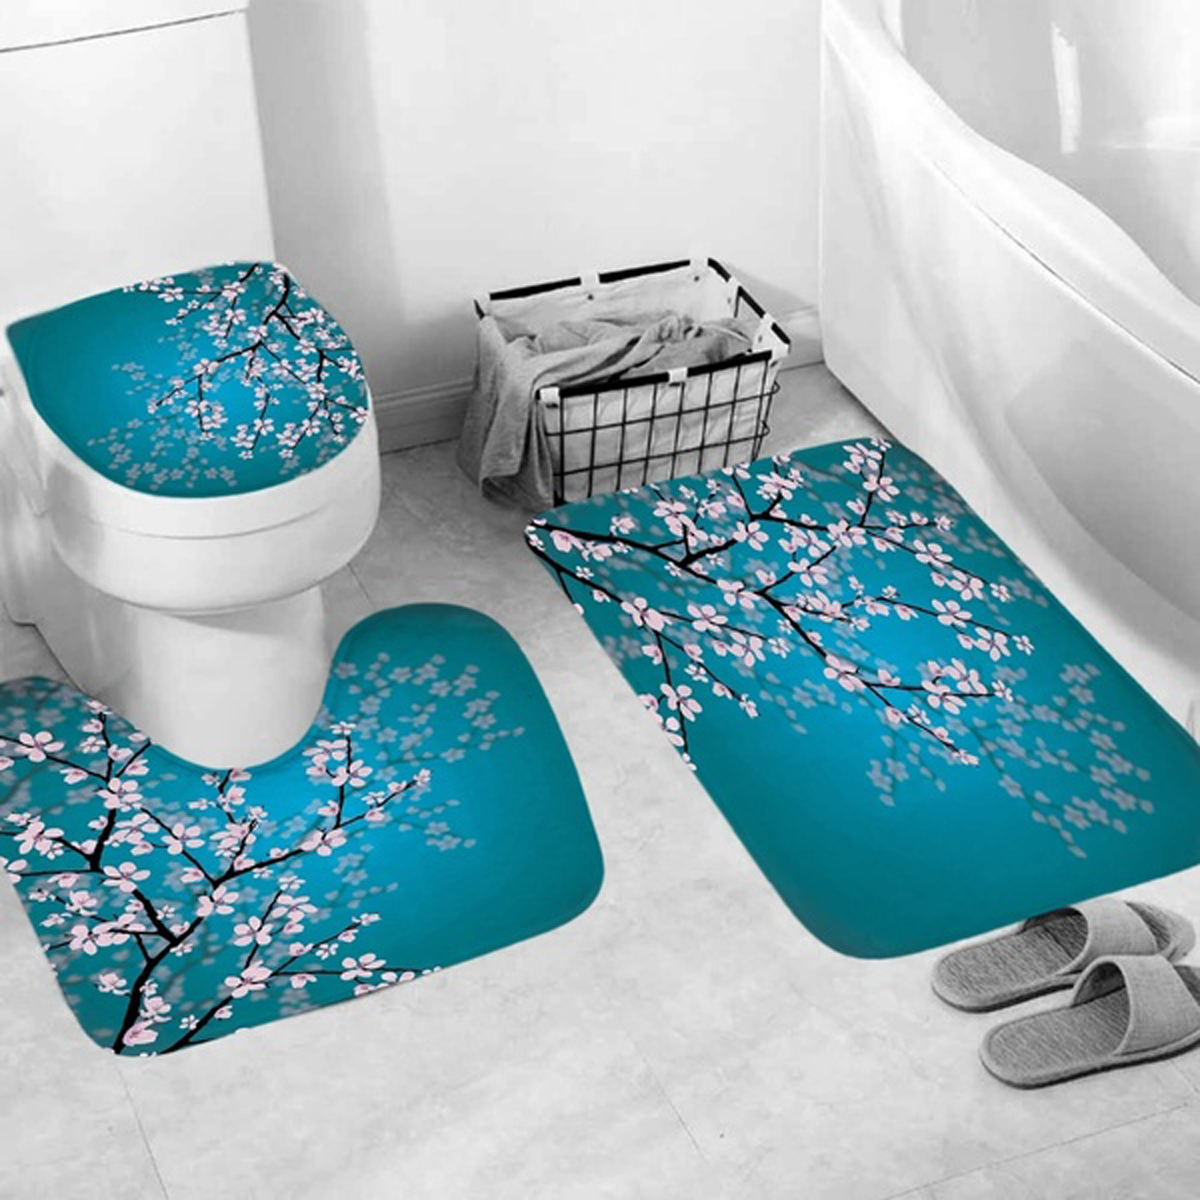 Plum Blossom Blue Print 71x71inch Waterproof Mildew Proof Shower Curtain Or Bathroom Door Mat Toilet Cover Mat Bath Rug Home Decor Walmart Canada